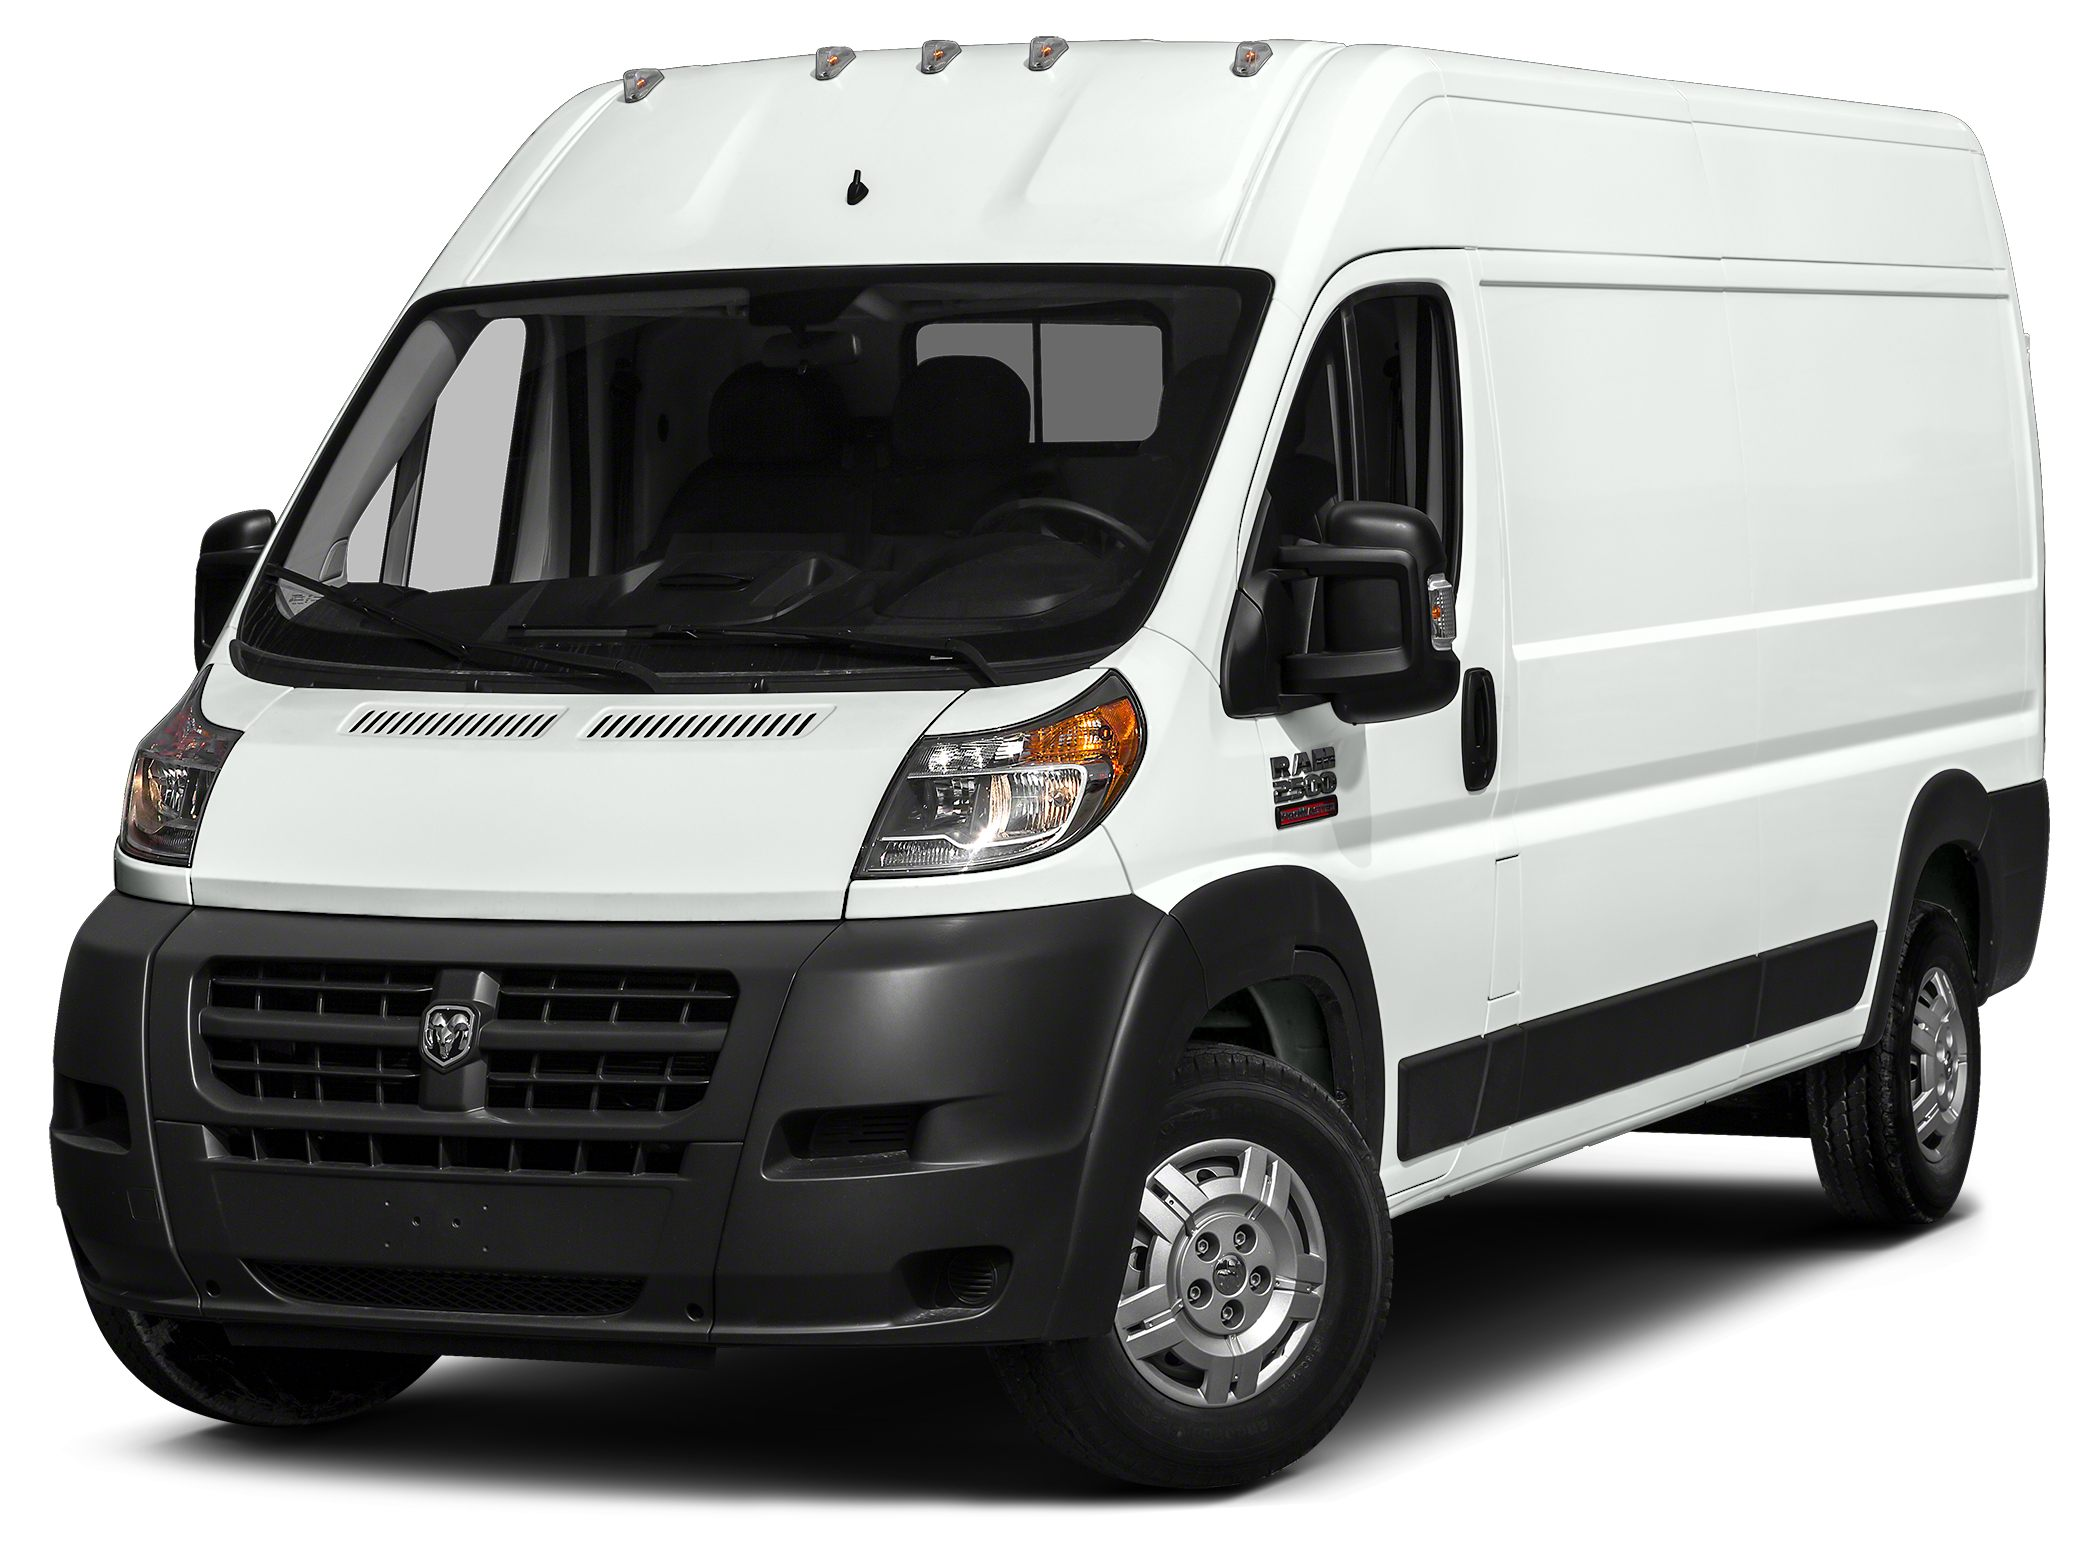 2015 RAM ProMaster 2500 159 WB High Roof Cargo Youve never felt safer than when you cruise with a